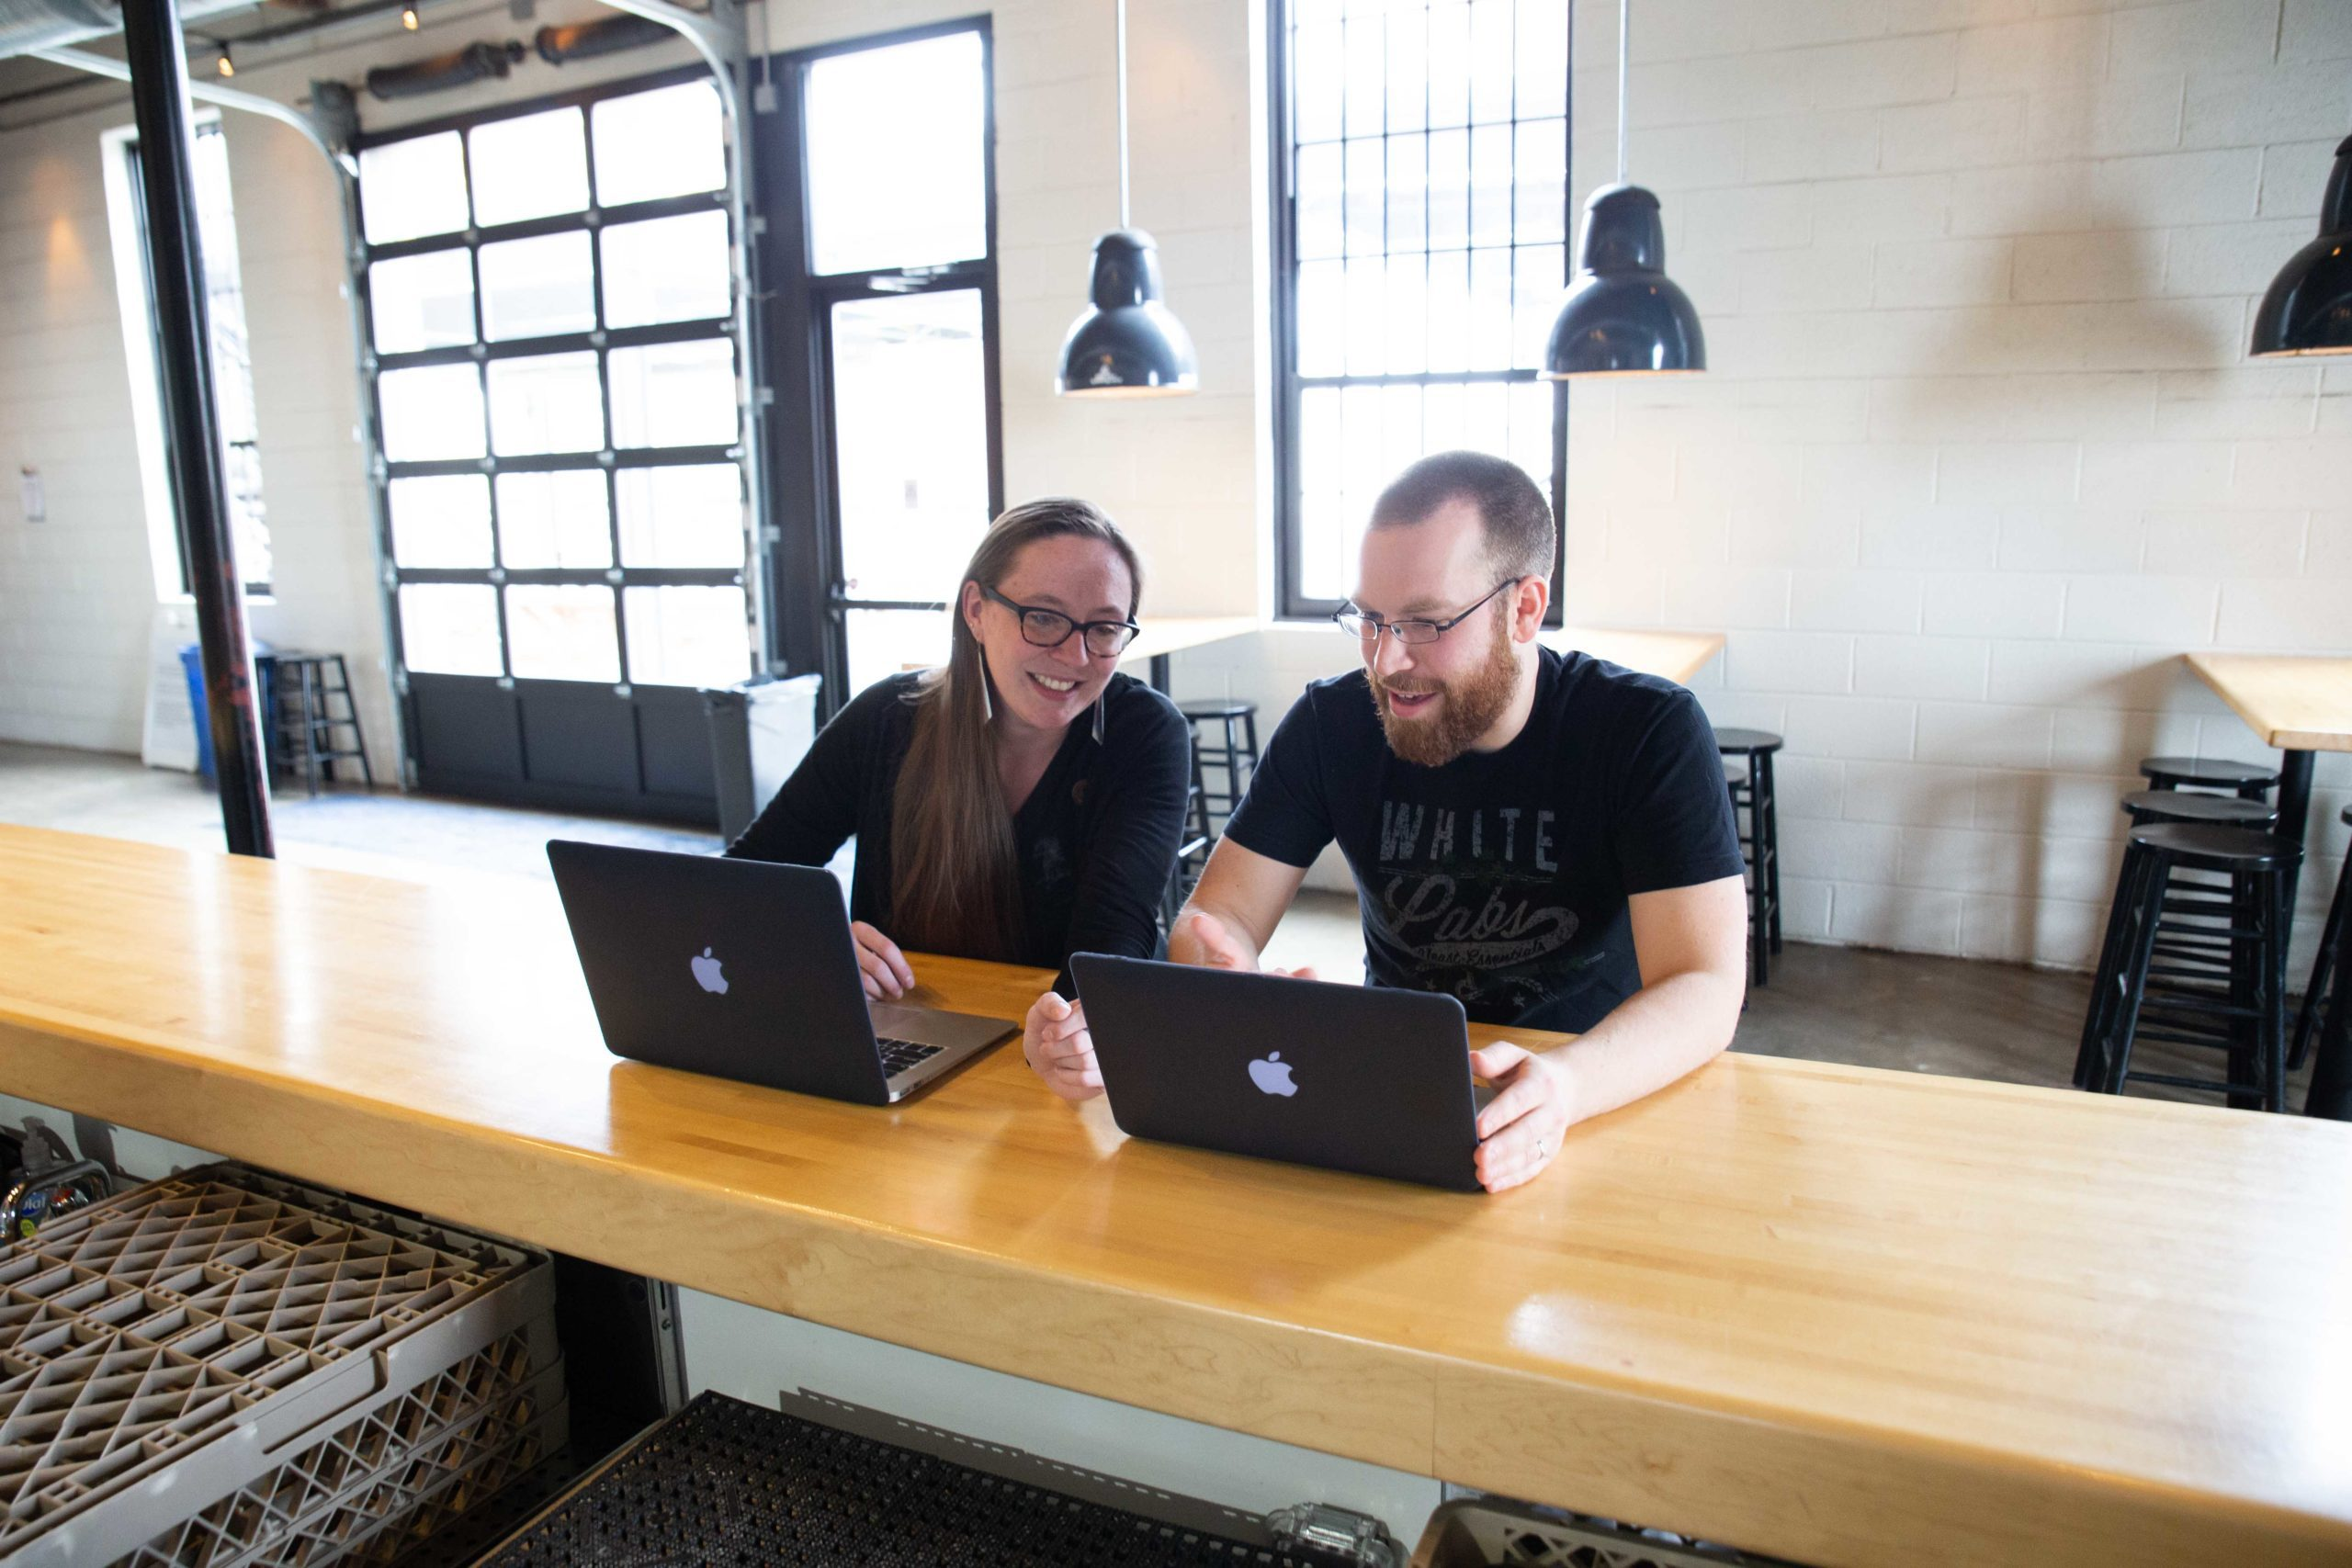 brewery employees using computers